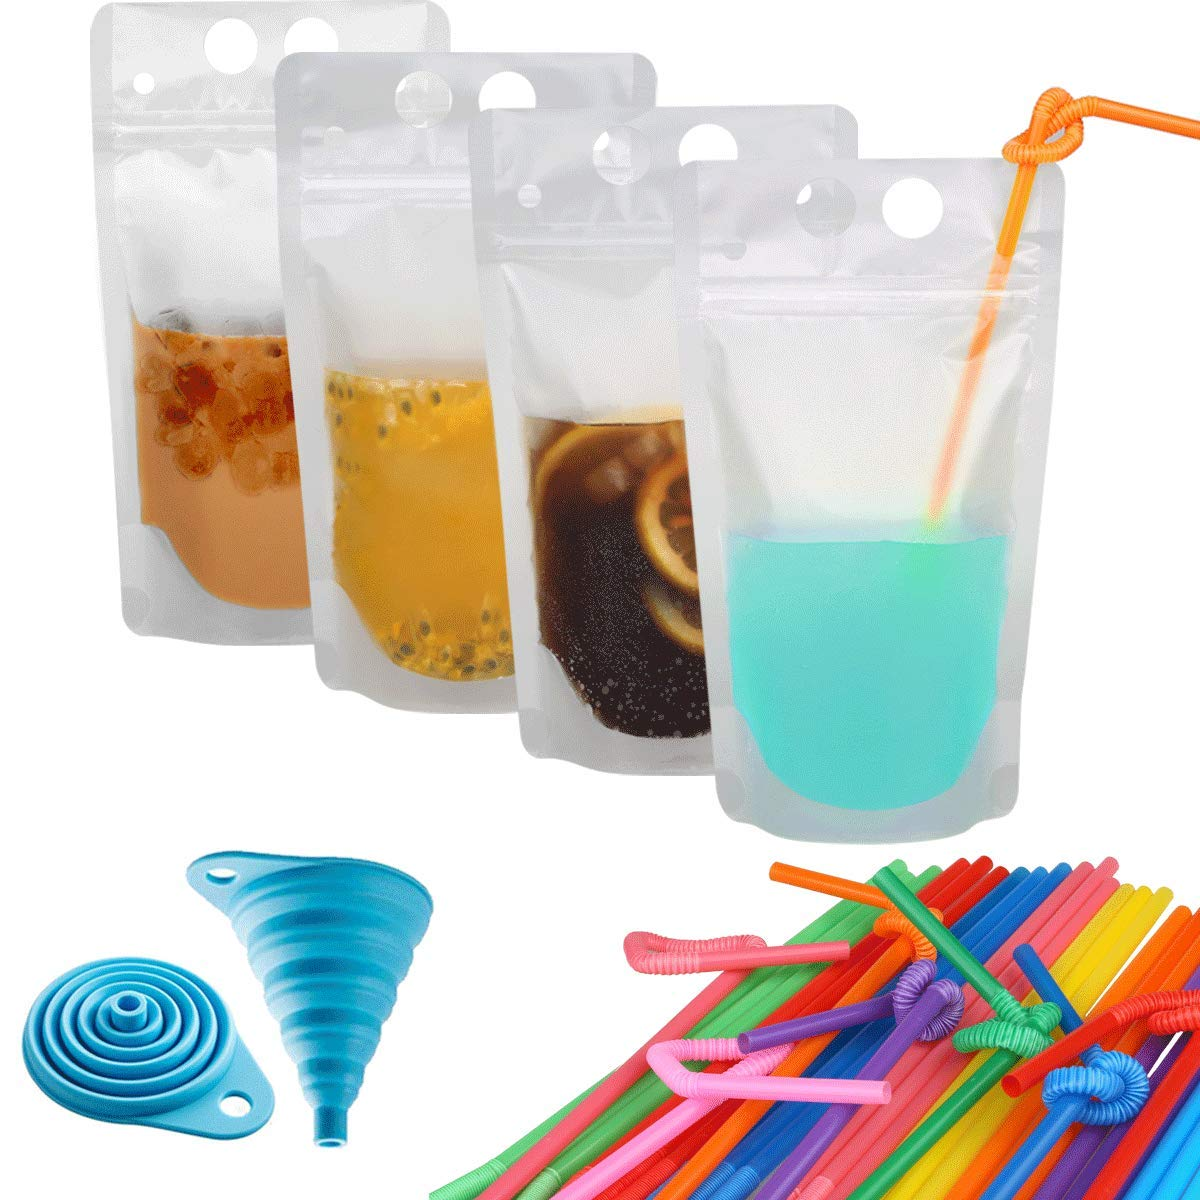 "100 Pcs Zipper Plastic Pouches Drink Bags,Heavy Duty Hand-Held Translucent Frosted Reclosable Stand-up Bag 2.4"" Bottom Gusset with 100pcs Straws & Funnel Included"